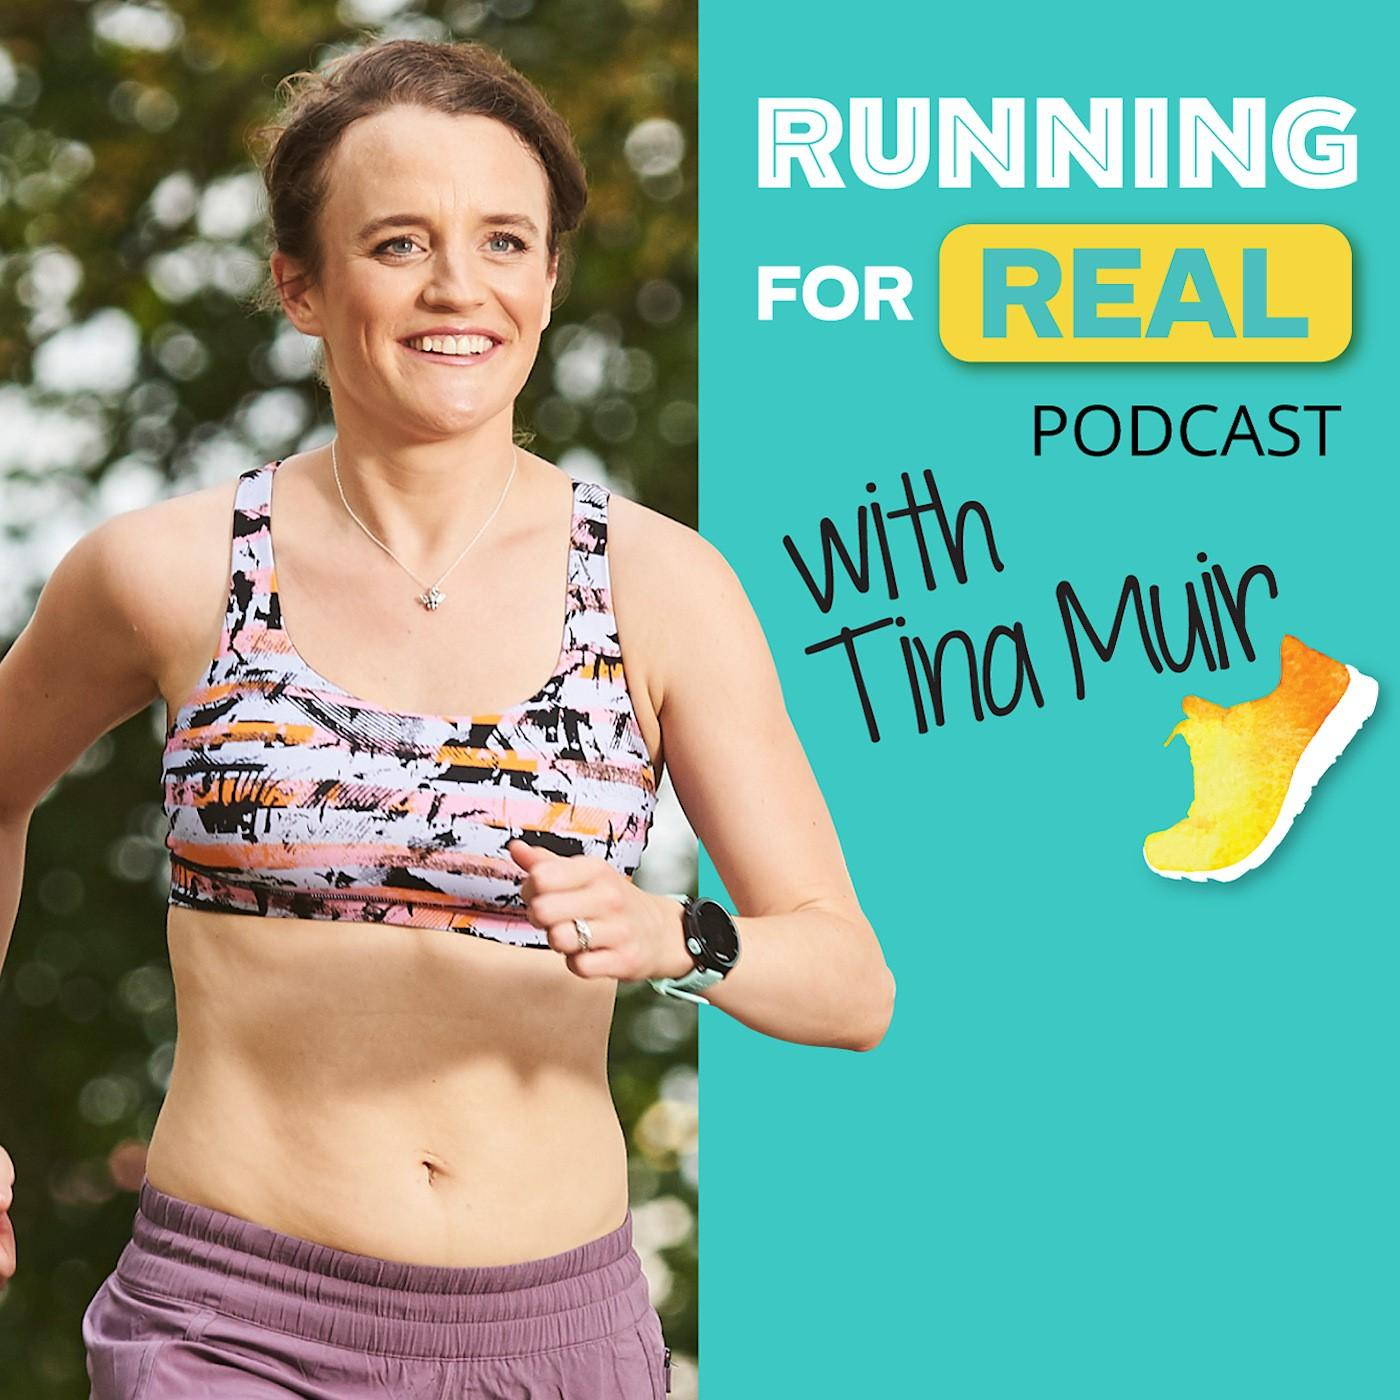 Jenni Falconer: Don't Take Your Running Glory Away -R4R 133